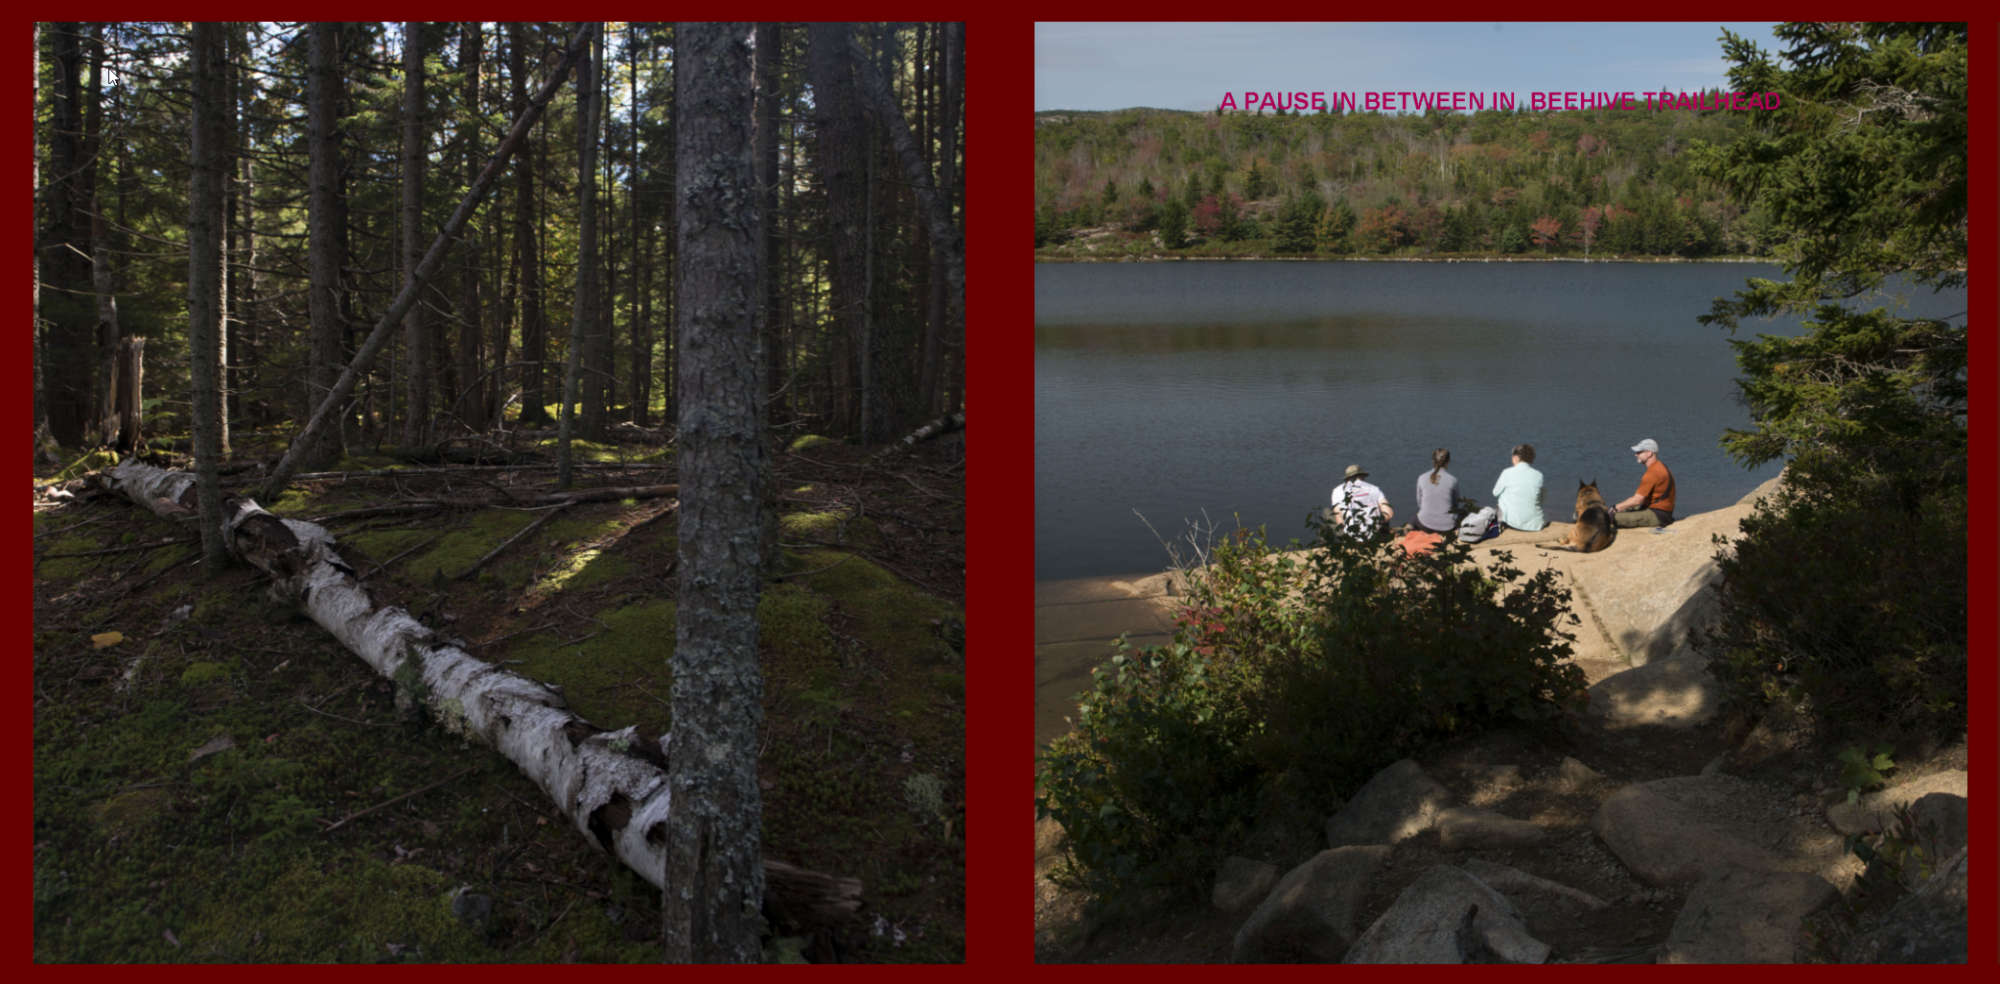 Fall in New-England Album - Pages 10-11: A pause